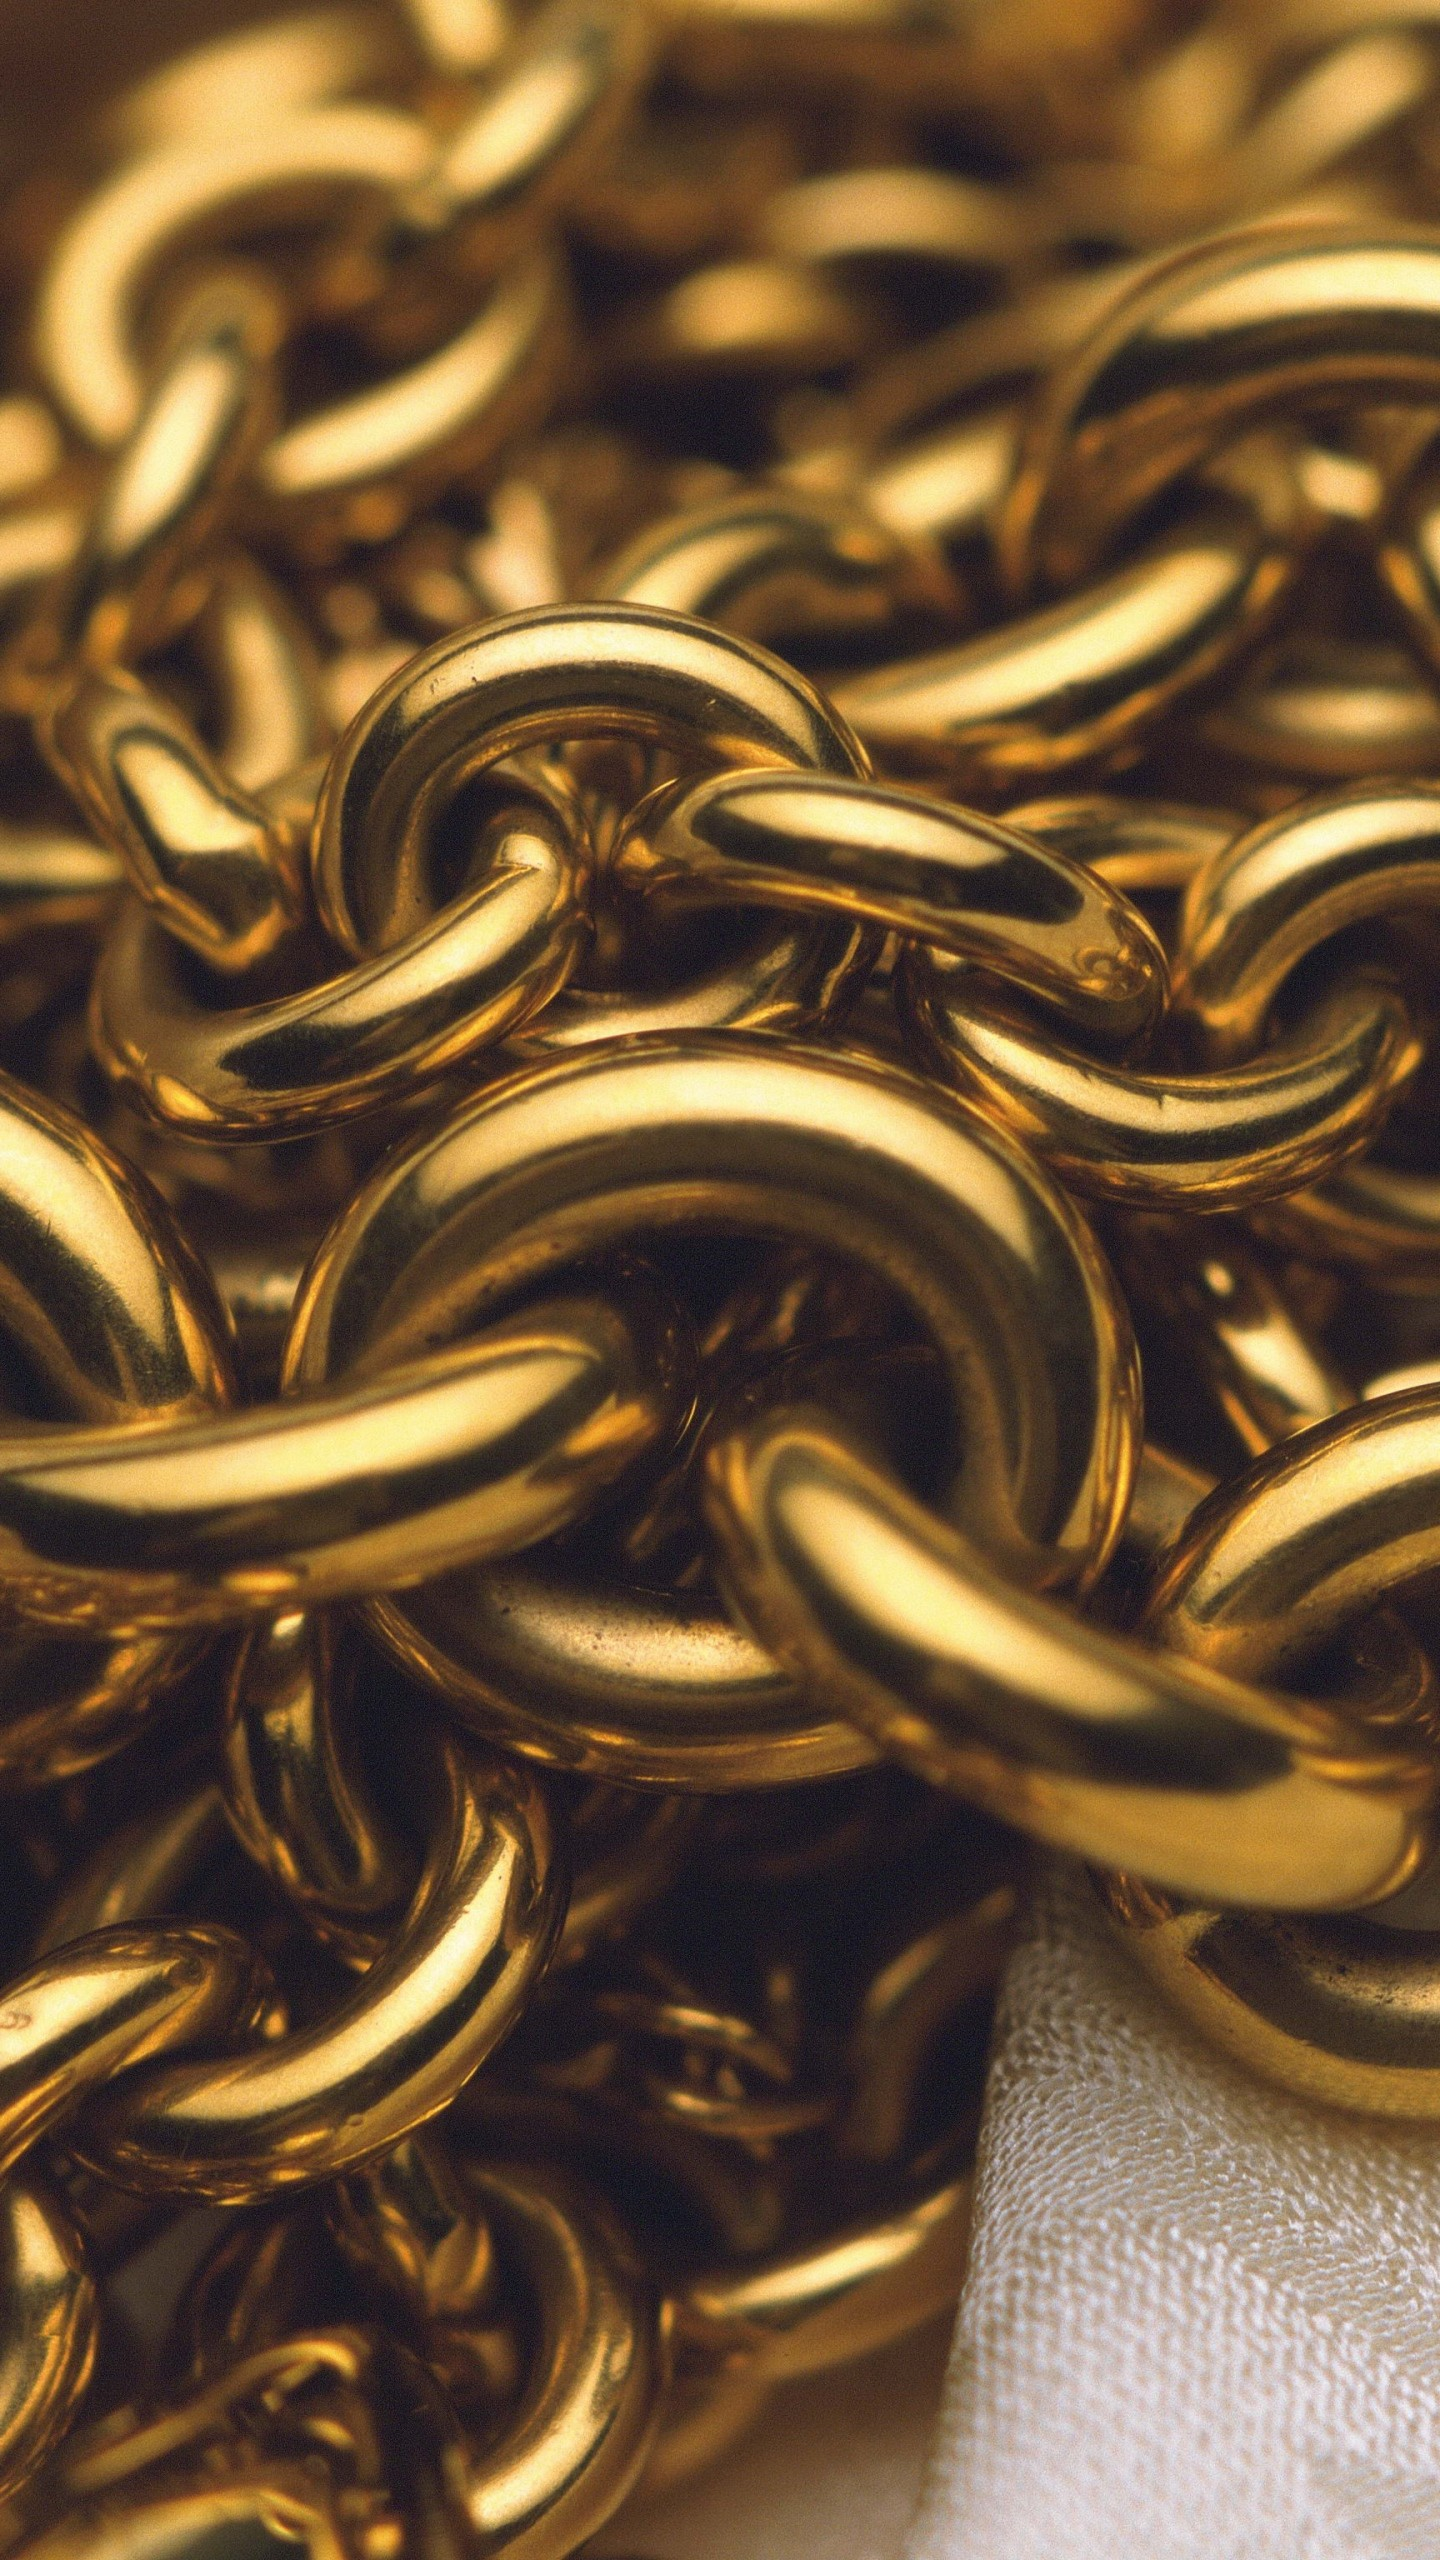 Wallpaper chain, gold, close-up